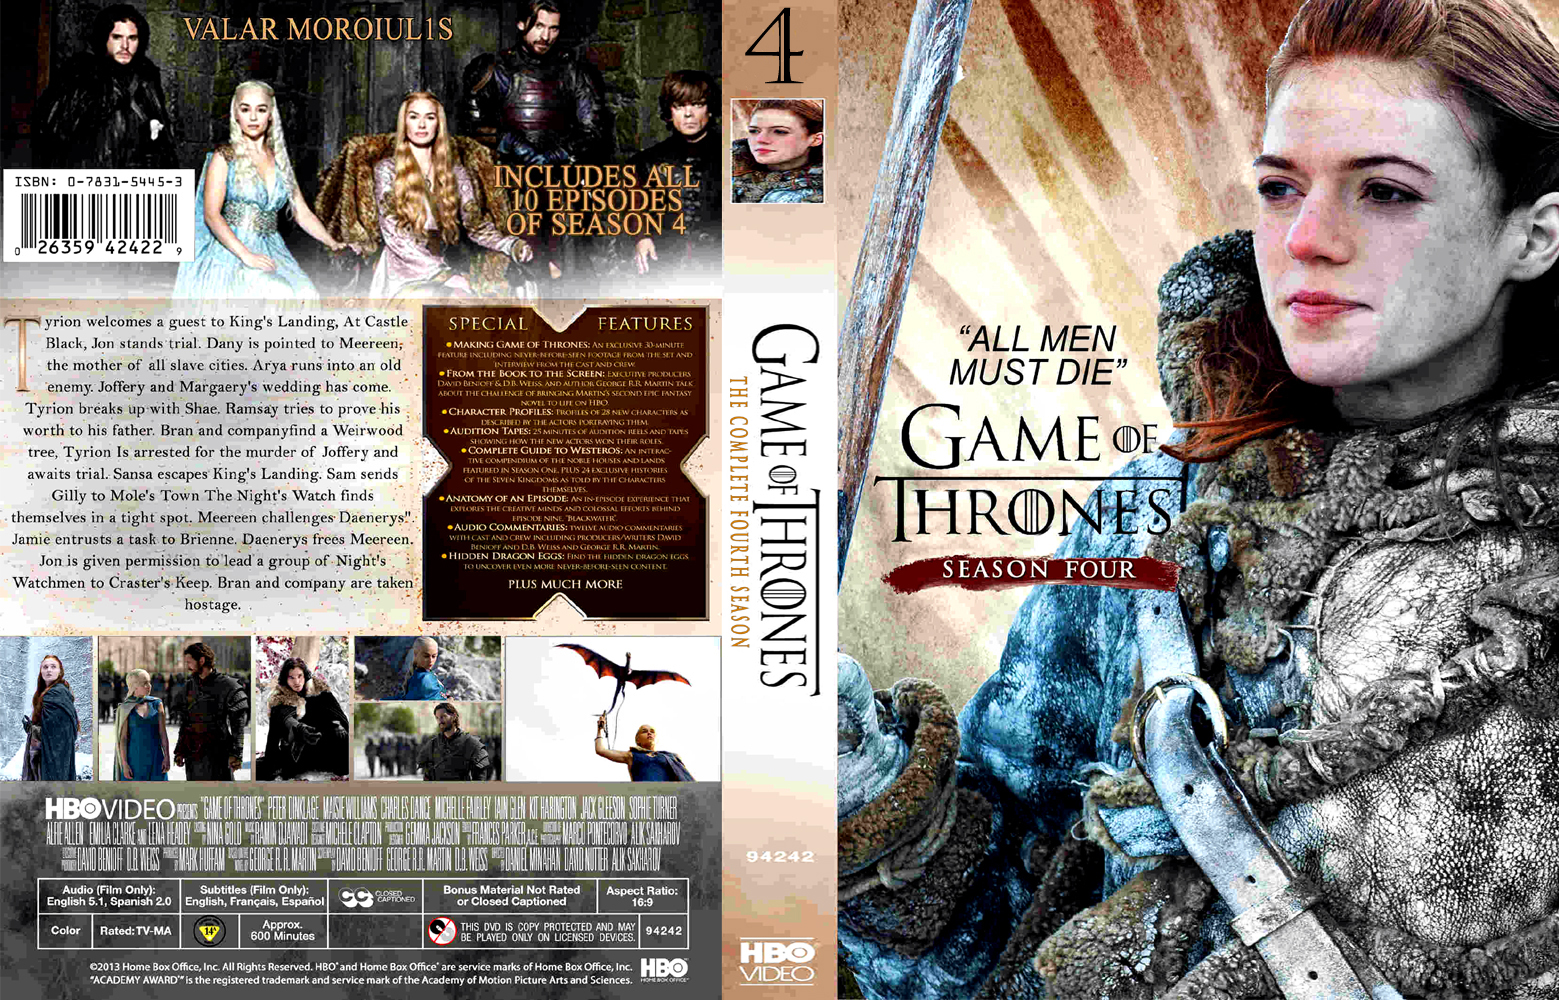 Game Of Trone Season 1 Dvd Cover: COVERS.BOX.SK ::: Game Of Thrones Season 4 DVD